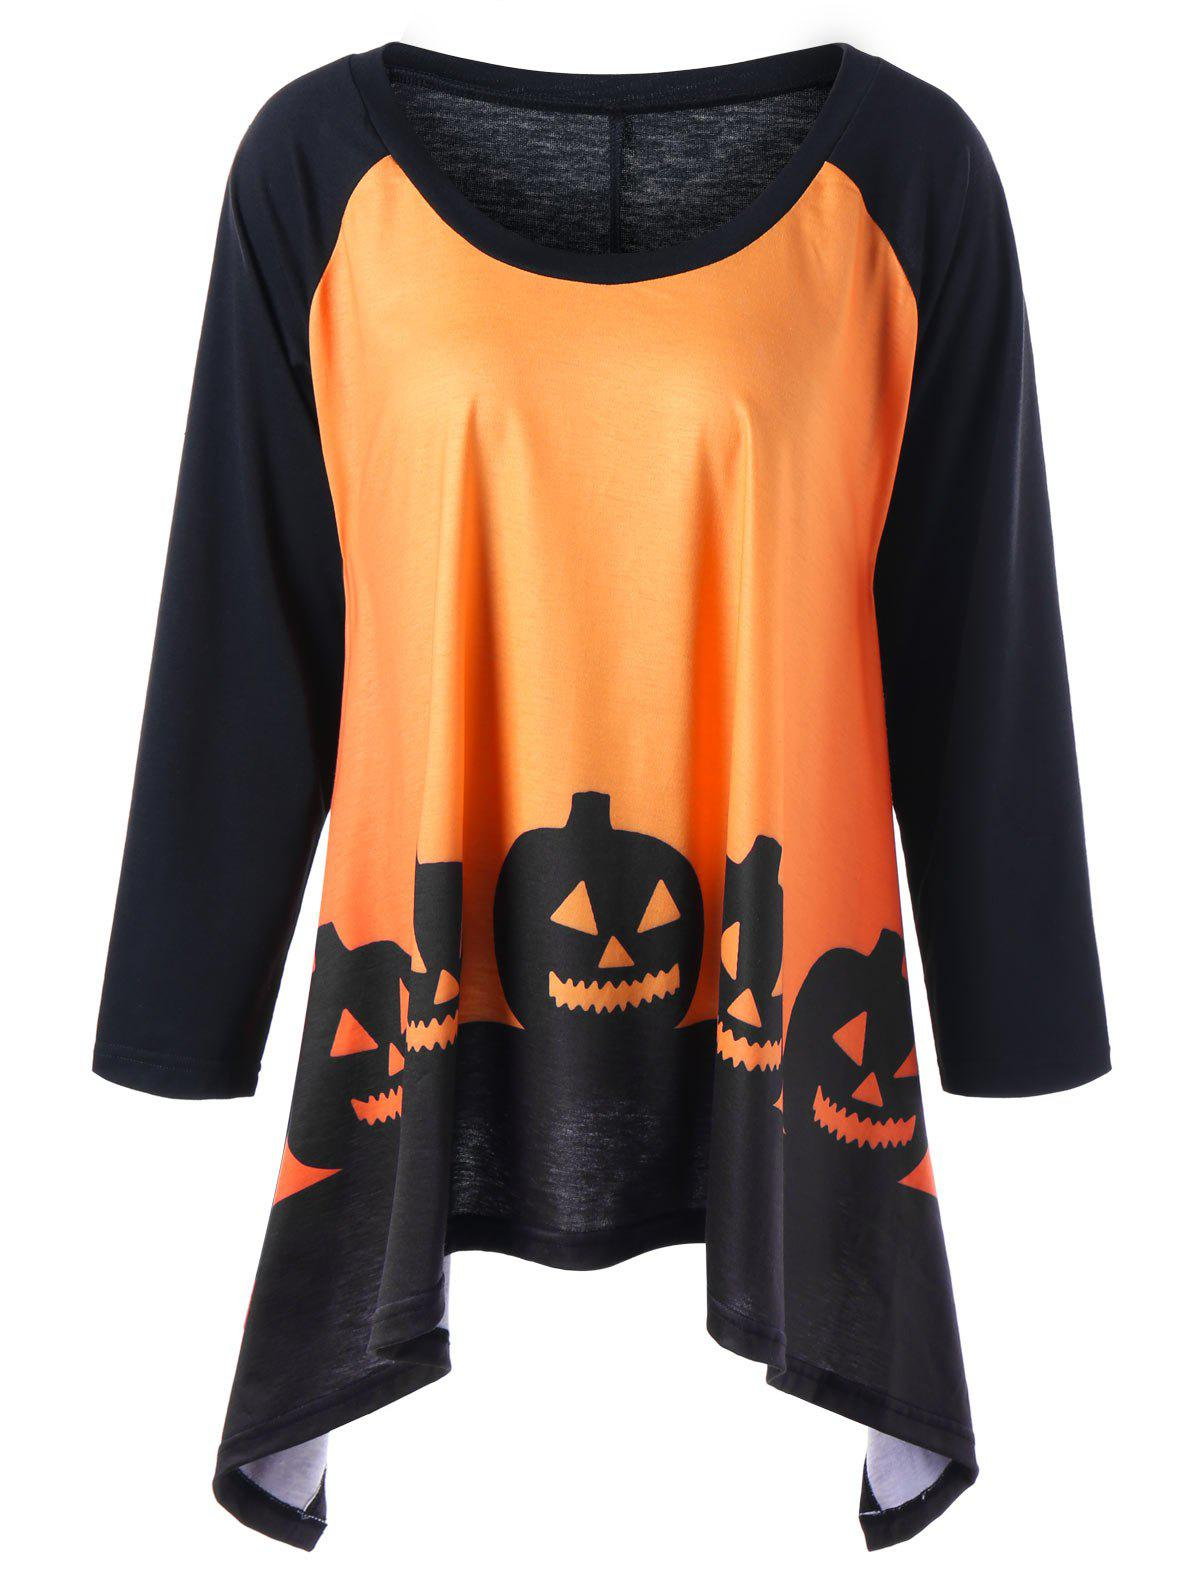 Plus Size Halloween Two Tone TopWOMEN<br><br>Size: 3XL; Color: ORANGE YELLOW; Material: Polyester,Spandex; Shirt Length: Regular; Sleeve Length: Full; Collar: Scoop Neck; Style: Casual; Season: Fall,Spring; Pattern Type: Others; Weight: 0.3000kg; Package Contents: 1 x Top;